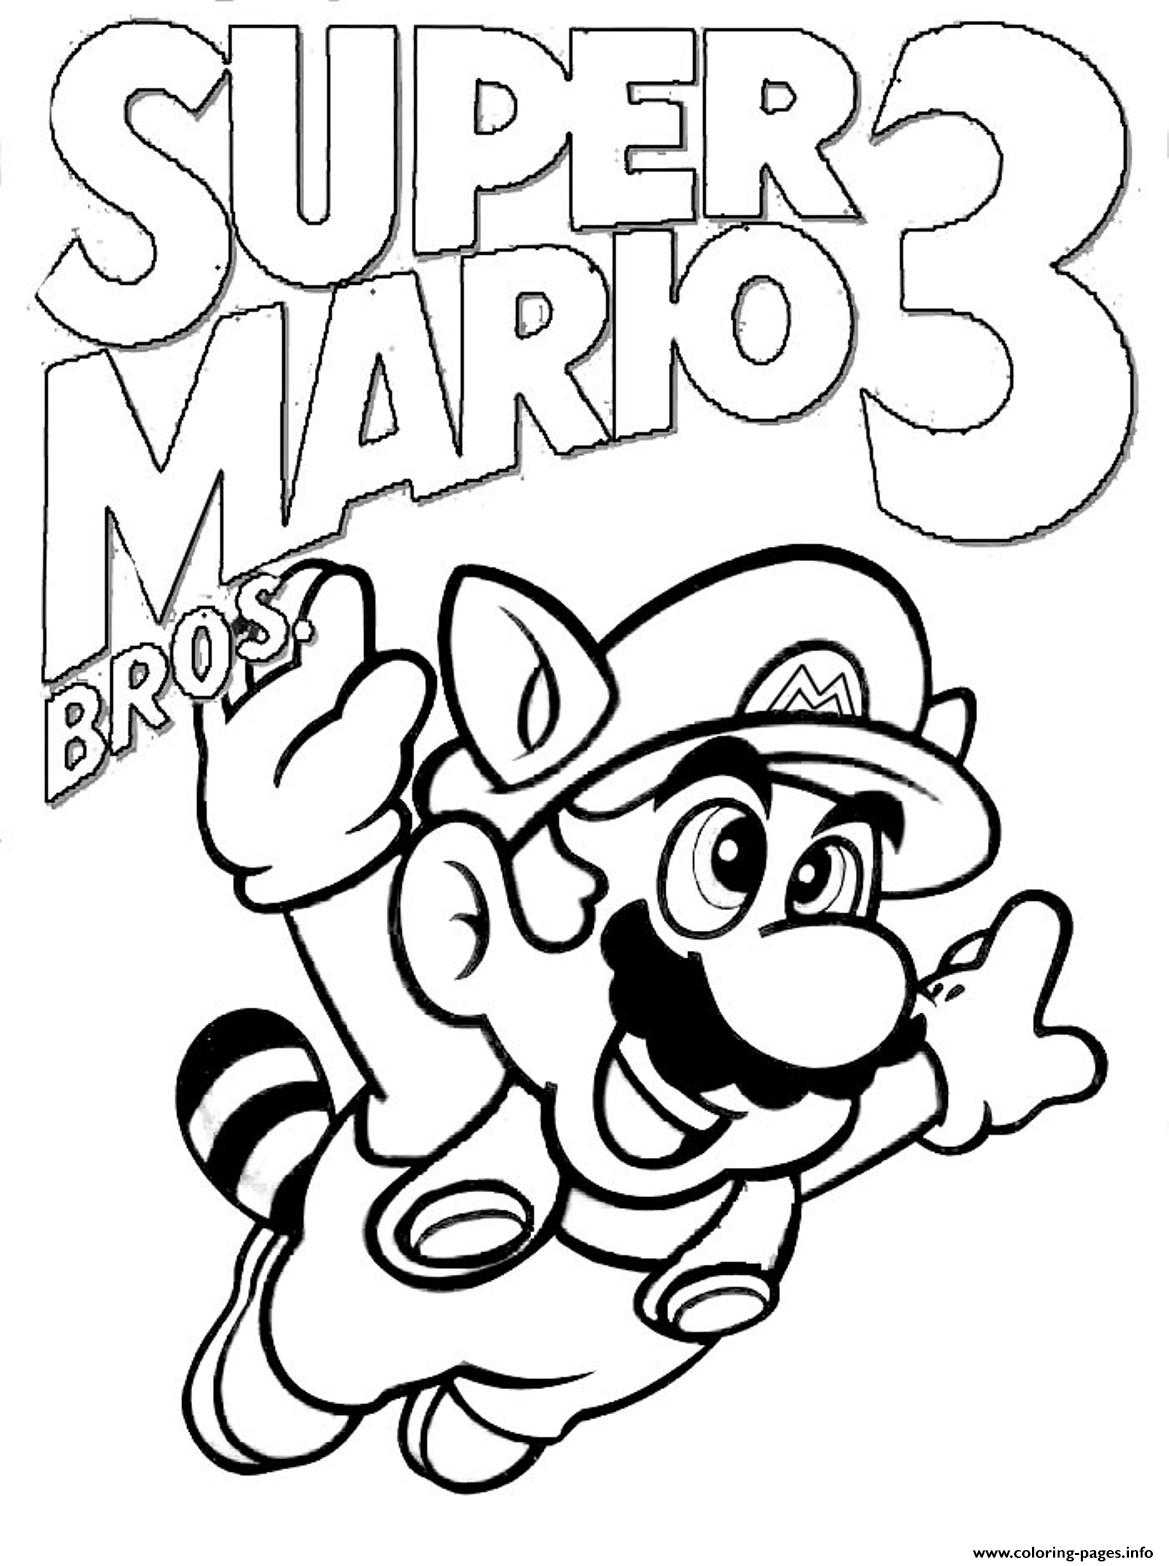 Super Mario Bros S Version 32c9a Coloring Pages Printable Download Of Super Mario Bros Coloring Pages to Print